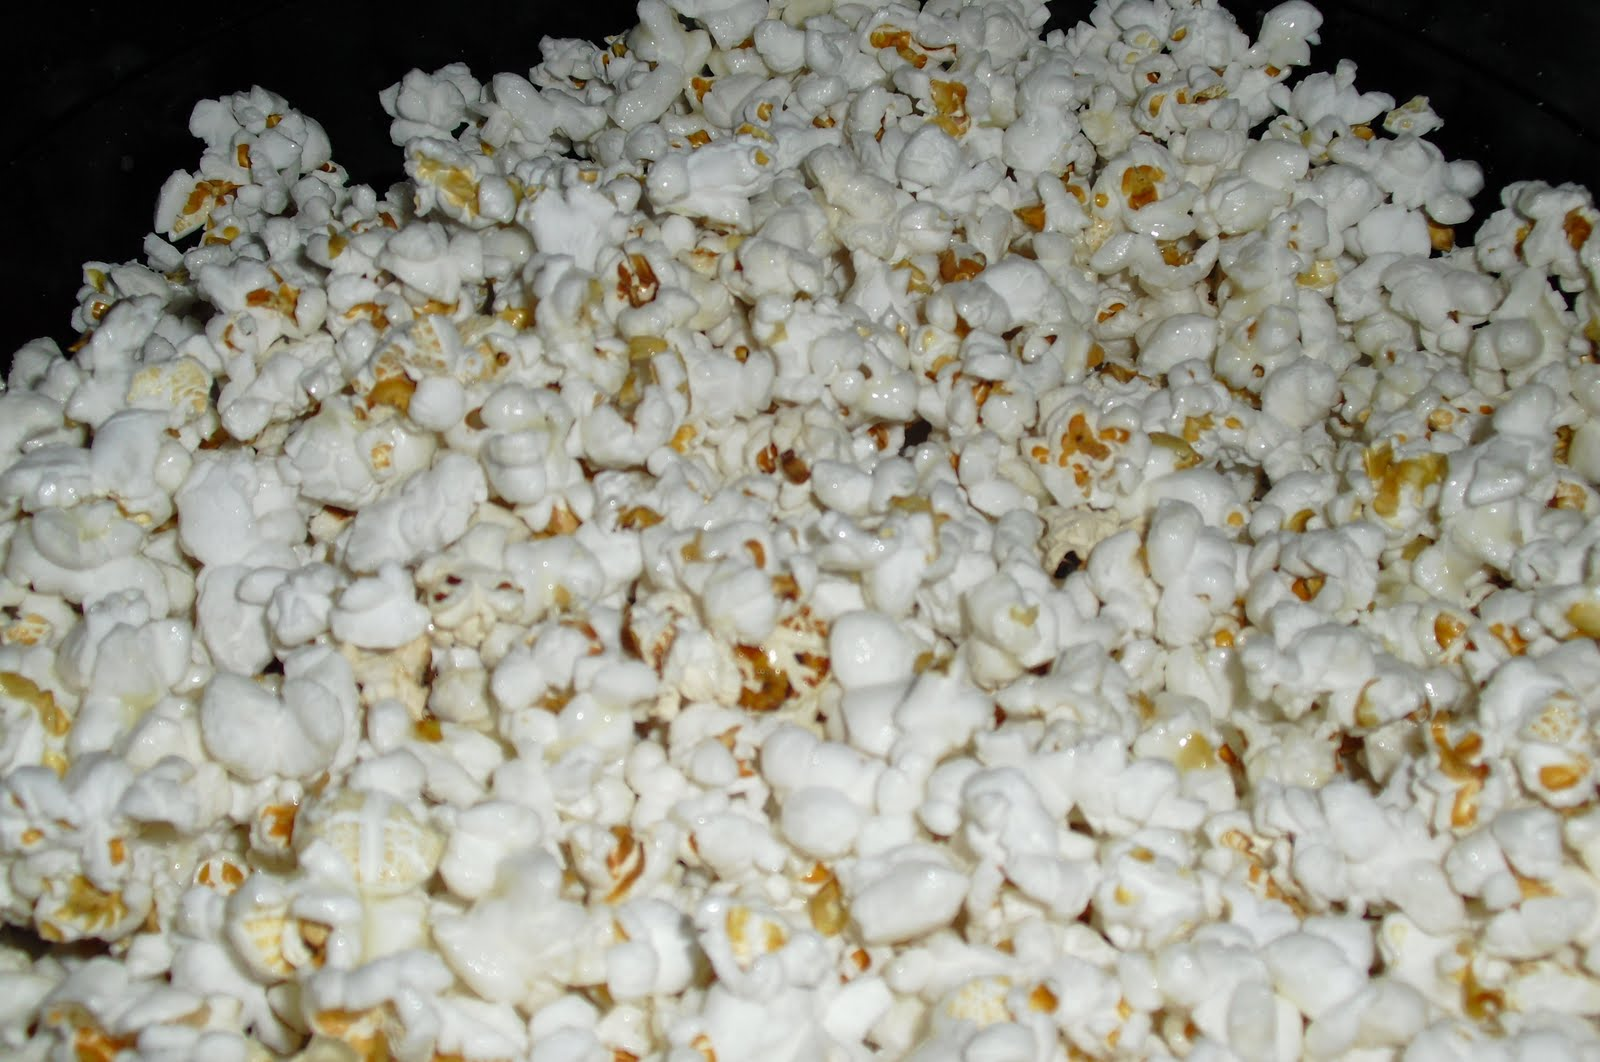 ... re viewing on the screen, but also enjoying a big bowl of kettle corn